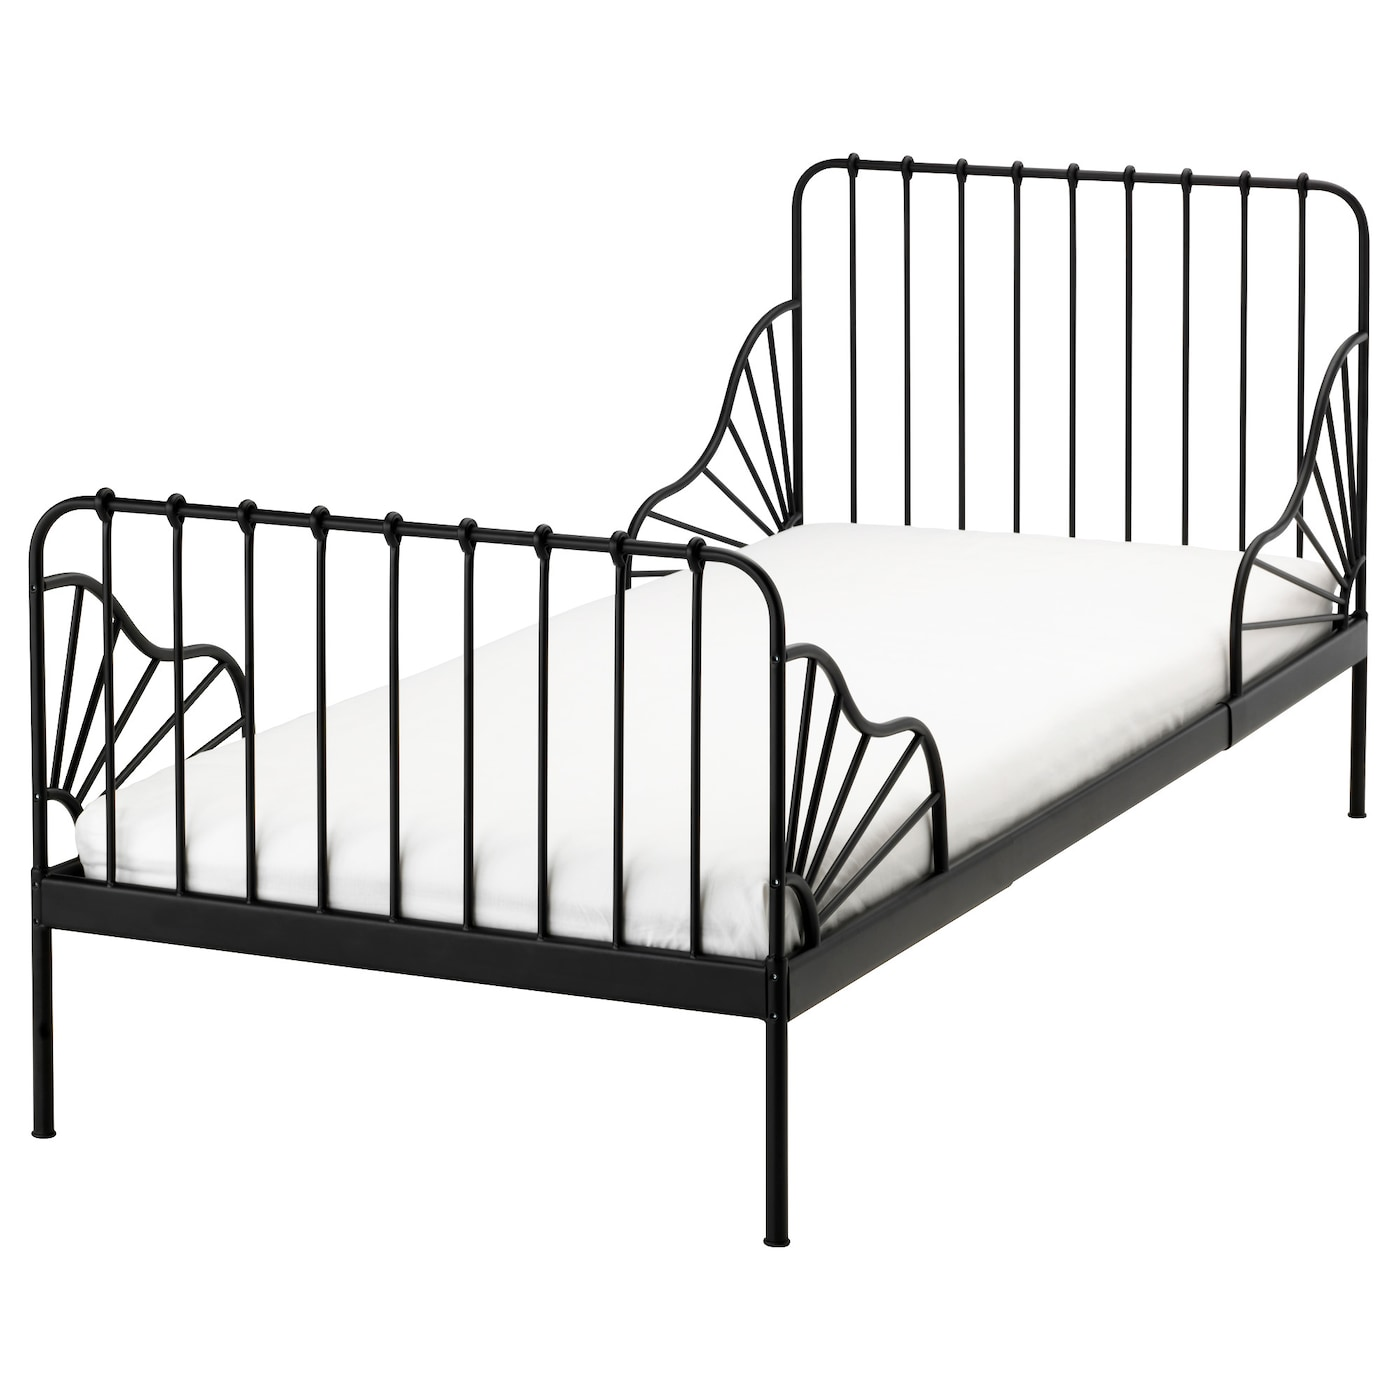 Toddler beds children 39 s kids beds ikea - Ikea kids bed frames ...